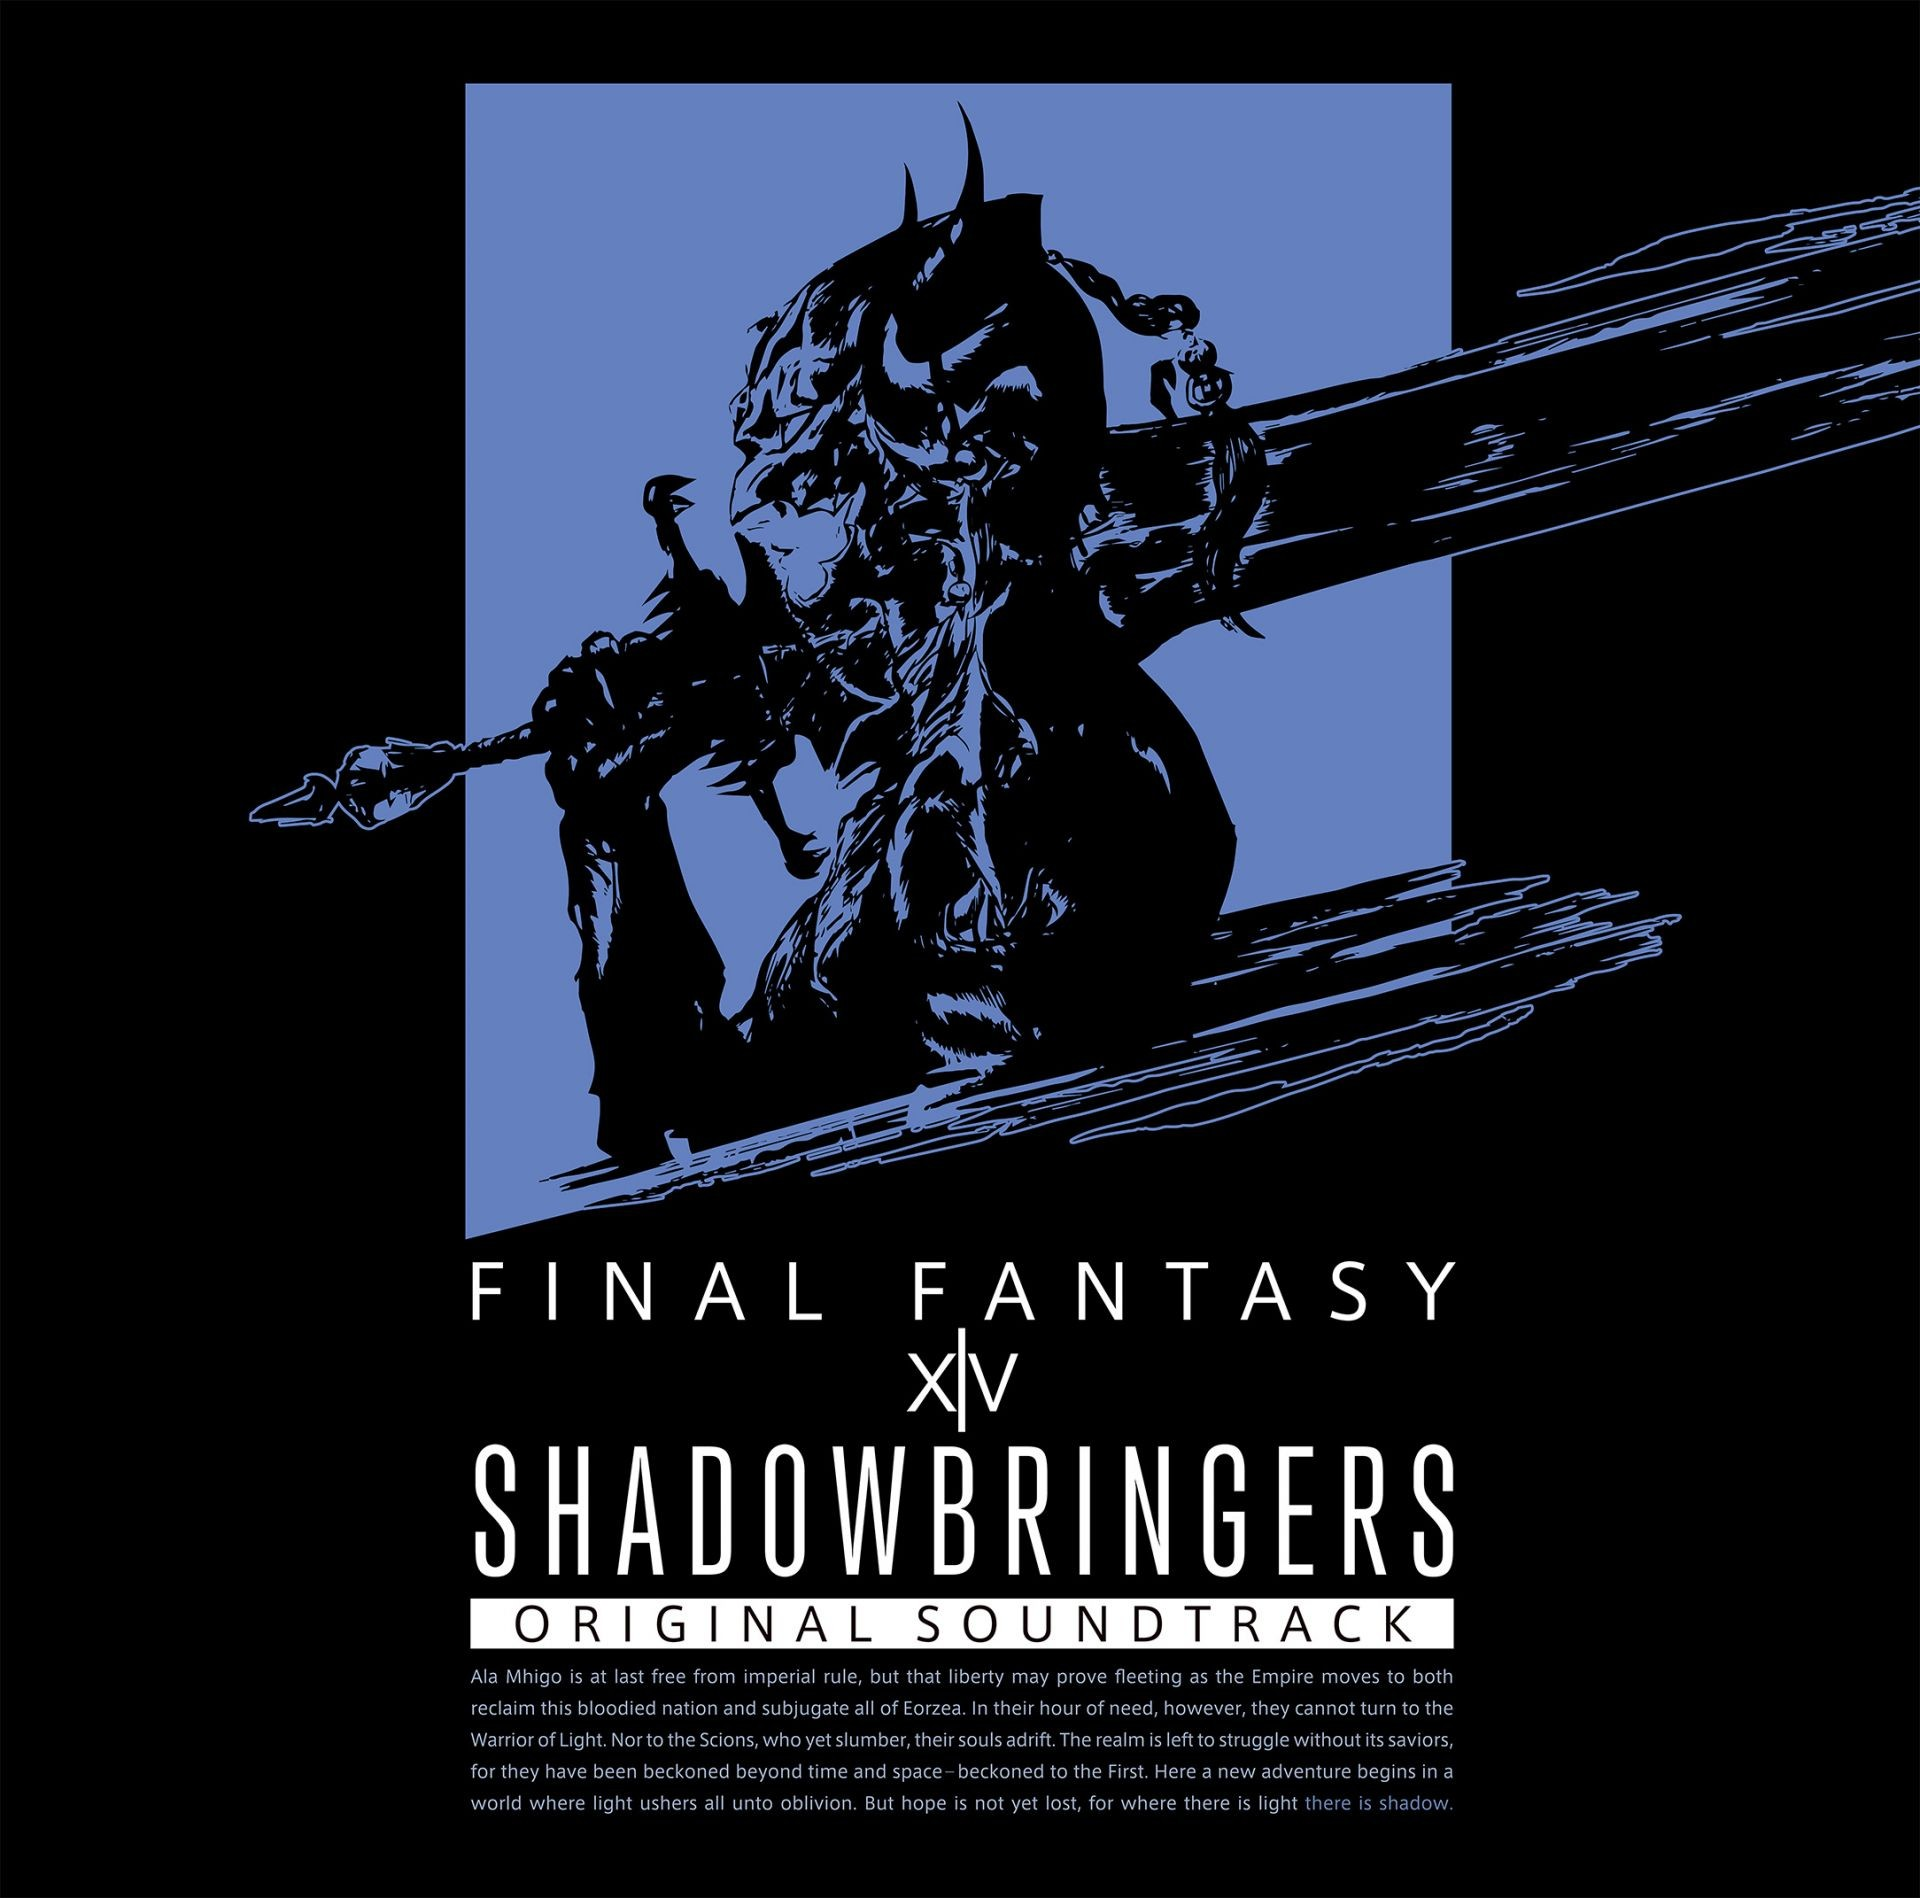 祖堅正慶 (Masayoshi Soken) – SHADOWBRINGERS: FINAL FANTASY XIV ORIGINAL SOUNDTRACK [Blu-ray to FLAC 24bit/96kHz]